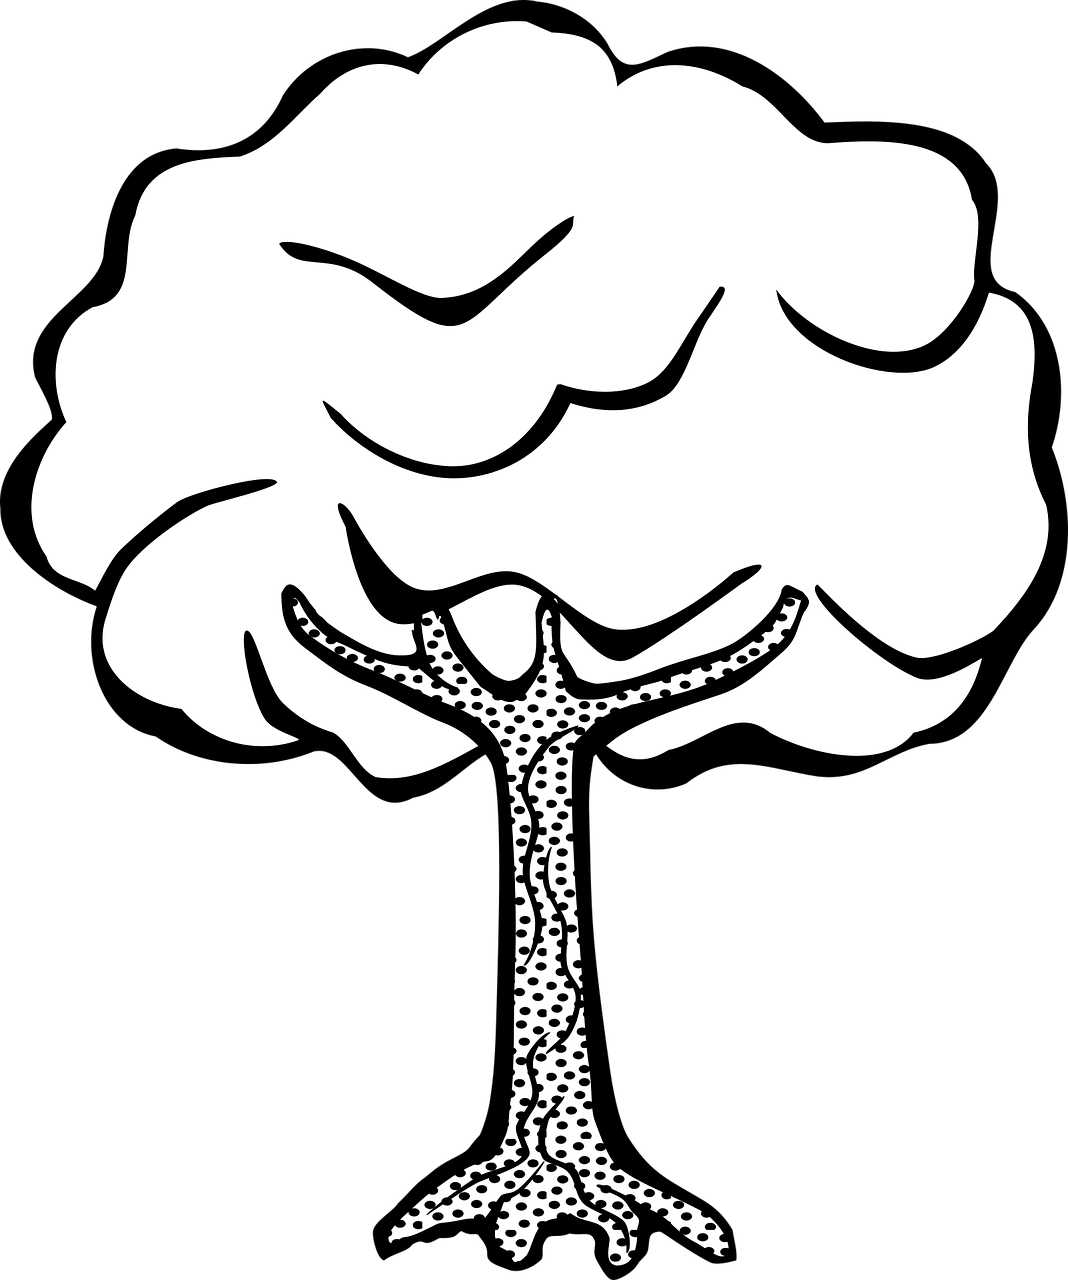 1068x1280 Free Printable Tree Coloring Pages For Kids Pics